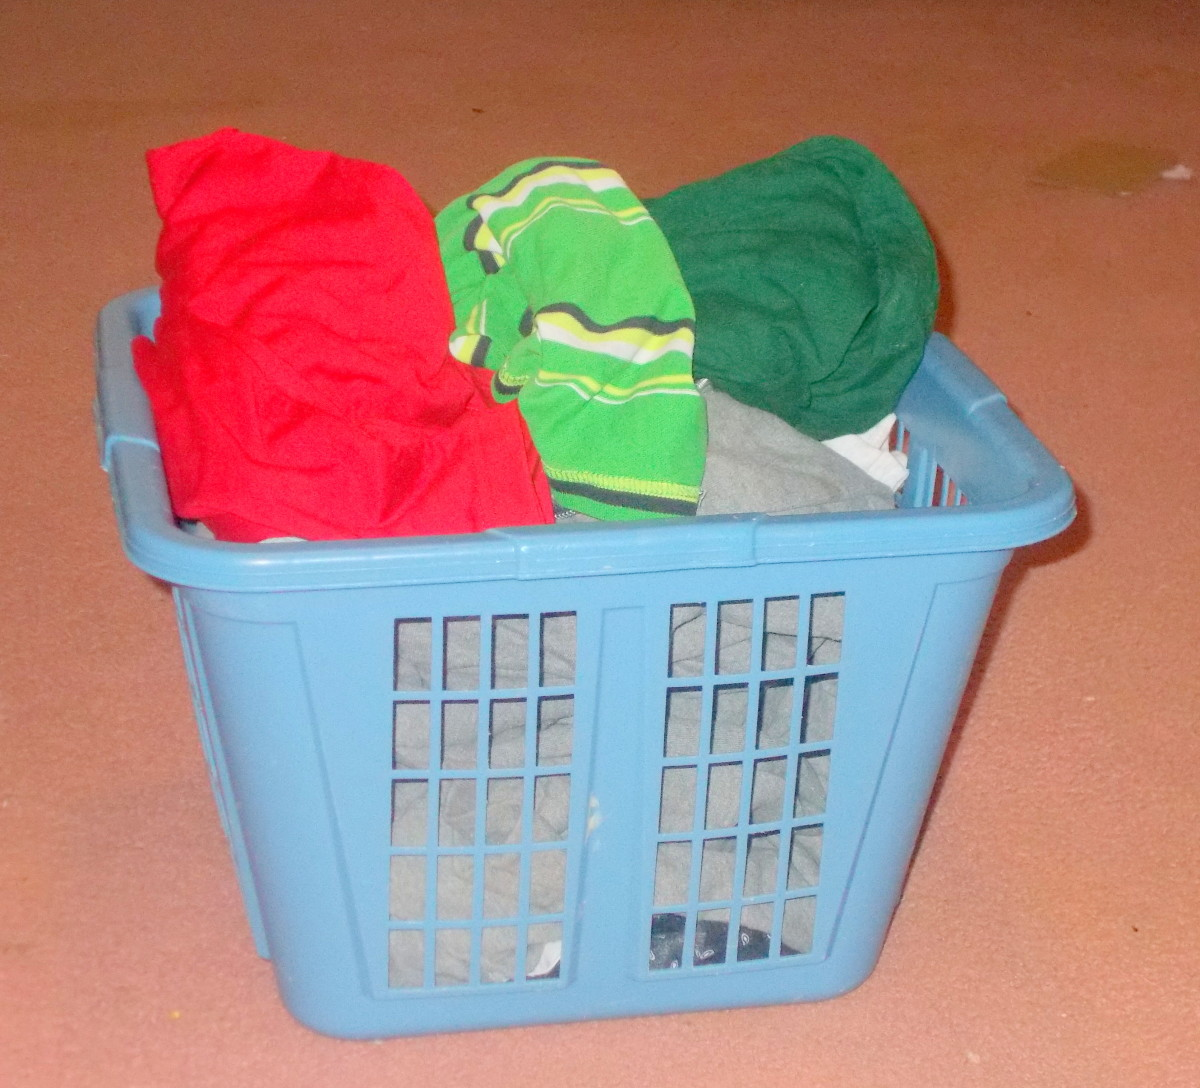 Doing the laundry can be challenging when a person has a vision loss.